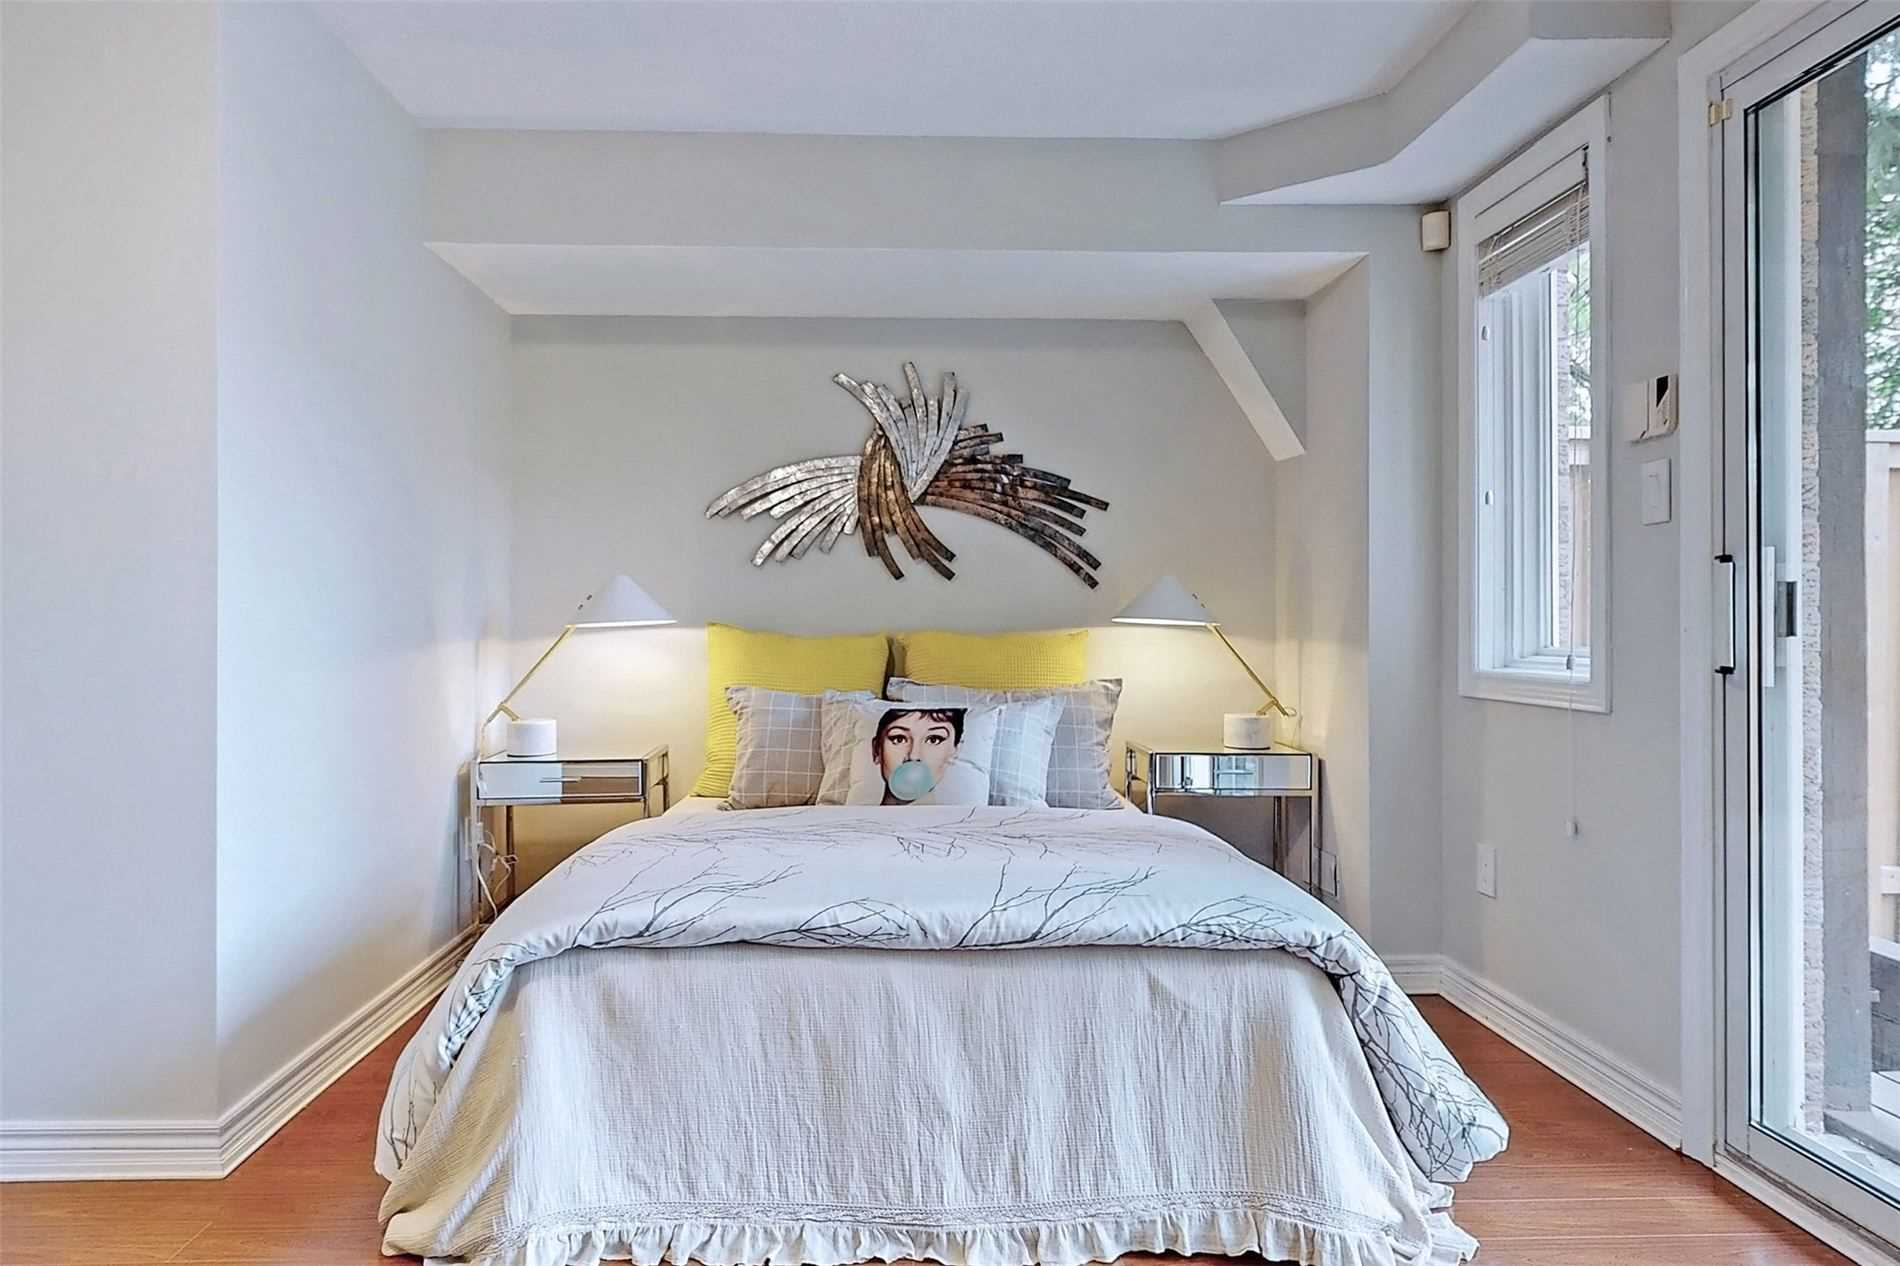 Att/row/twnhouse For Sale In Toronto , 3 Bedrooms Bedrooms, ,4 BathroomsBathrooms,Att/row/twnhouse,For Sale,Hycrest